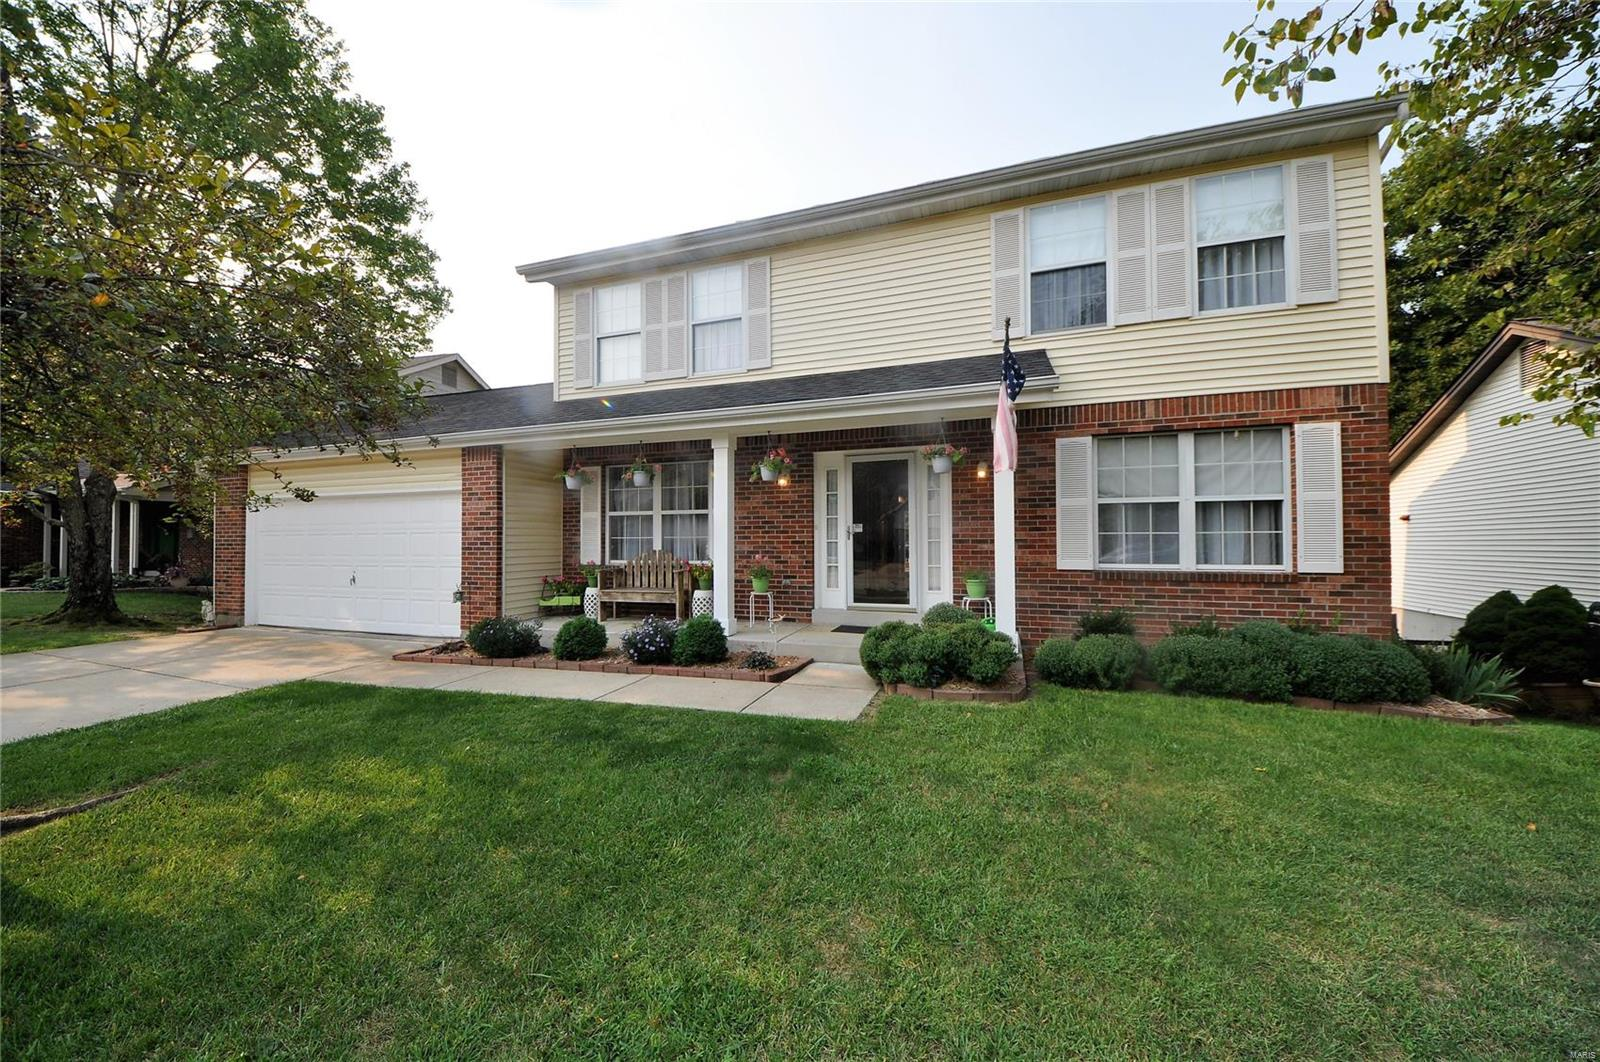 """Updated 4 BDRM, 2.5 BTH 2 sty w/2300+ sq ft sitting on PRIME LOT backing to trees/woods in highly sought after Rockwood Summit district! Exterior also feat NEW arch shingle ROOF (20), brick/vinyl front w/covered porch and backyard w/deck & patio overlooking fenced in .24 acre lot & woods. Center hall plan interior starts w/entry foyer looking to formal dining to left w/chair rail & formal living to the right, all w/crown molding. Spacious great rm boasts wooded views from large bay window & brick WB FP. Renovated kitchen (21) w/42"""" white cabinets, pantry & gleaming white appliances including refrigerator. Main fl laundry & half bth on main. New laminate flooring (21) through main. Upper level features owners suite w/vaulted ceilings, decorative wood beam, HUGE walk in closet & full bth w/dbl sink vanity. 3 add'l spacious bdrms, full bth w/dbl sink vanity & all new carpet upstairs (21). Fresh paint throughout! Framed, walk-out LL is WAITING FOR YOUR finishing touches! MUST SEE!"""